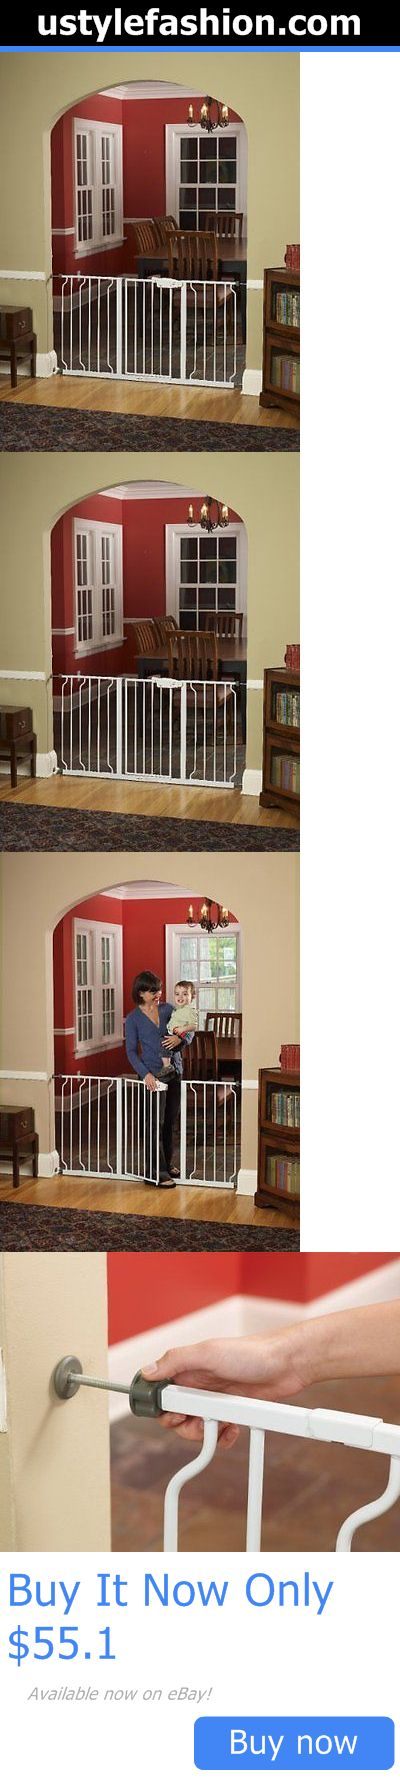 Baby Safety Gates: Walk Thru Baby Pet Safety Secure Extra Wide Gate Door BUY IT NOW ONLY: $55.1 #ustylefashionBabySafetyGates OR #ustylefashion